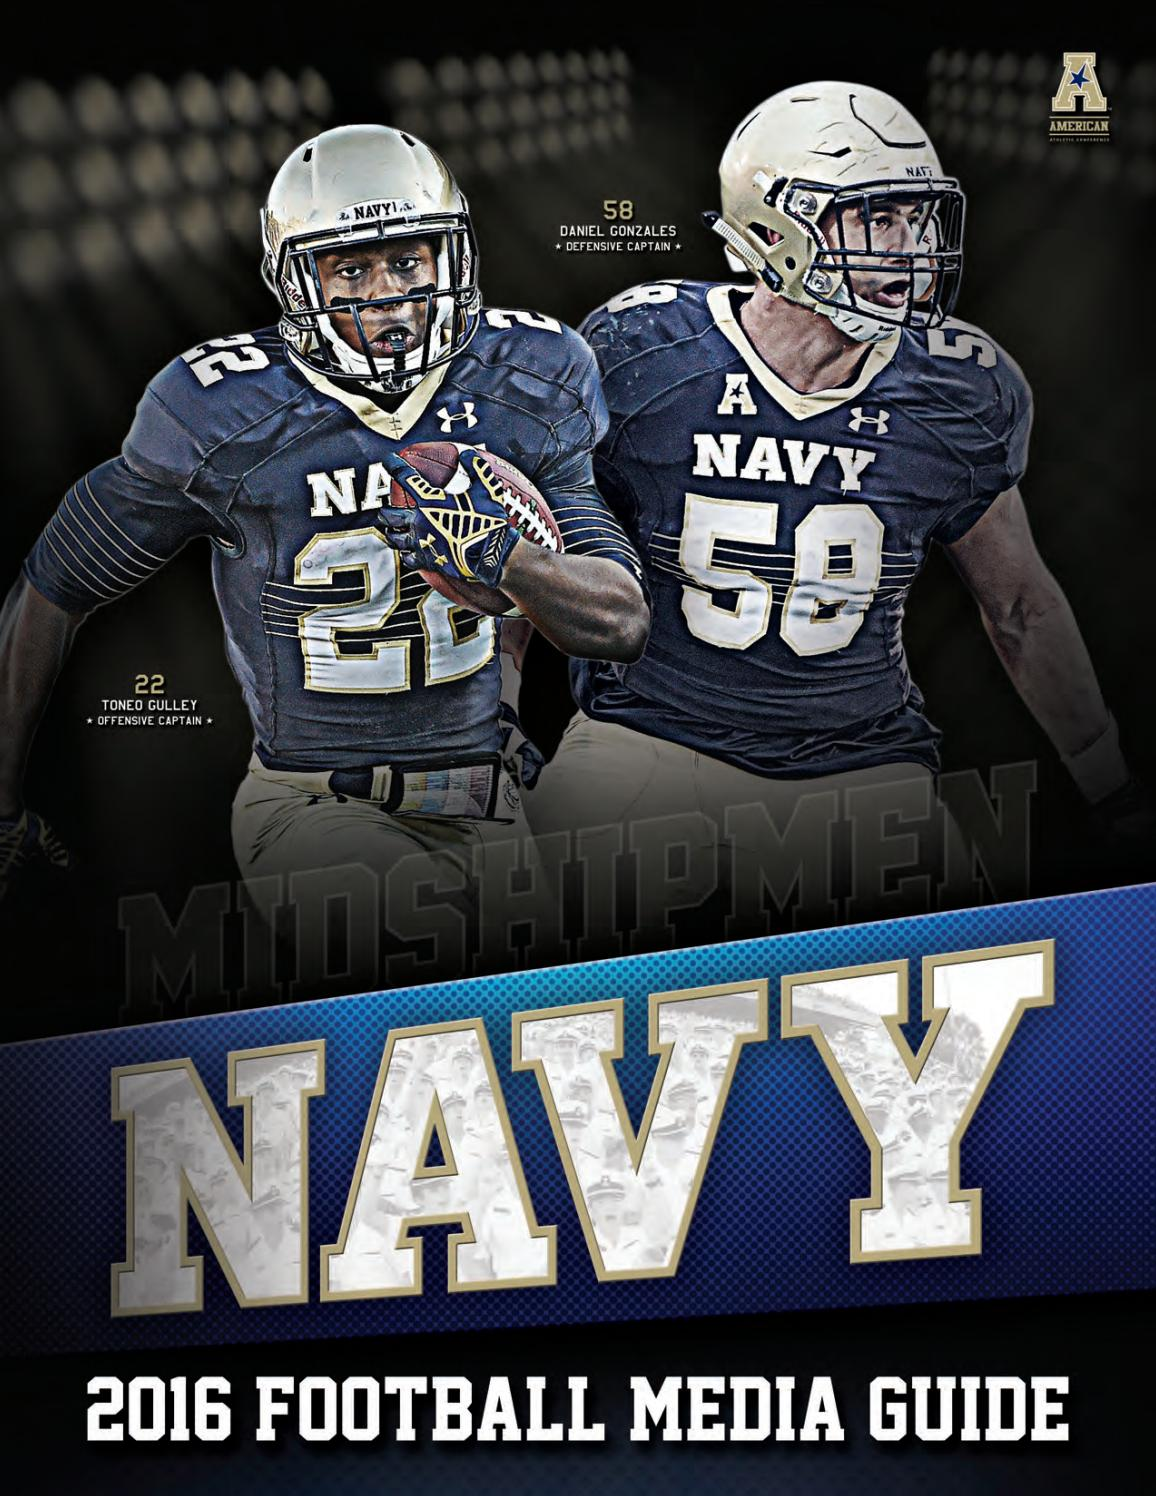 Wholesale 2016 Football Guide by Naval Academy Athletic Association issuu